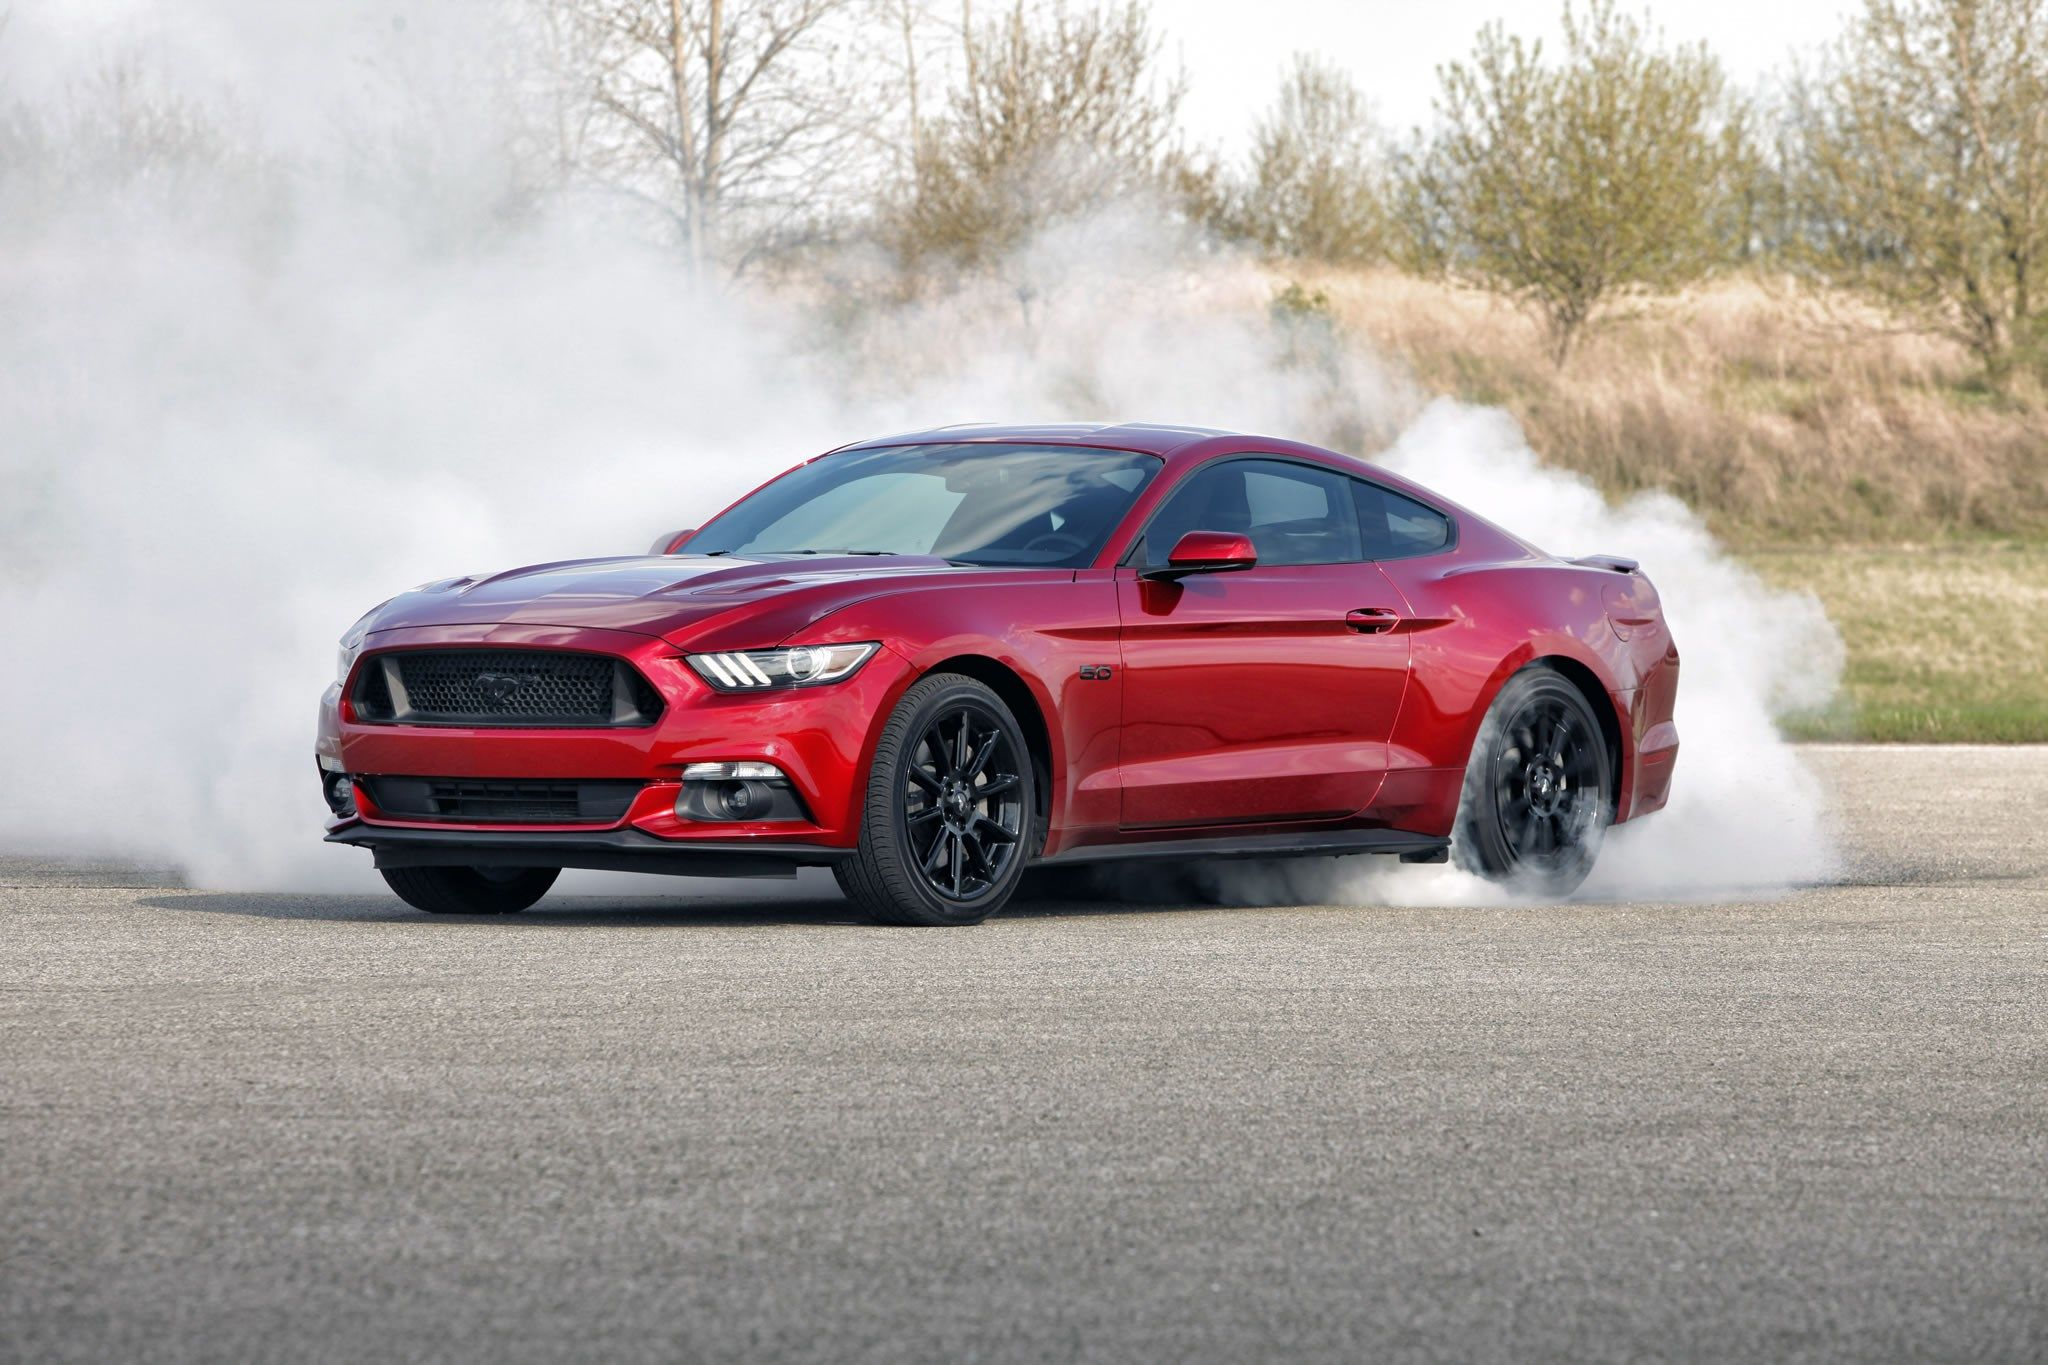 Mustang Free Screensaver Wallpapers Affordable Sports Cars Ford Mustang Mustang Gt